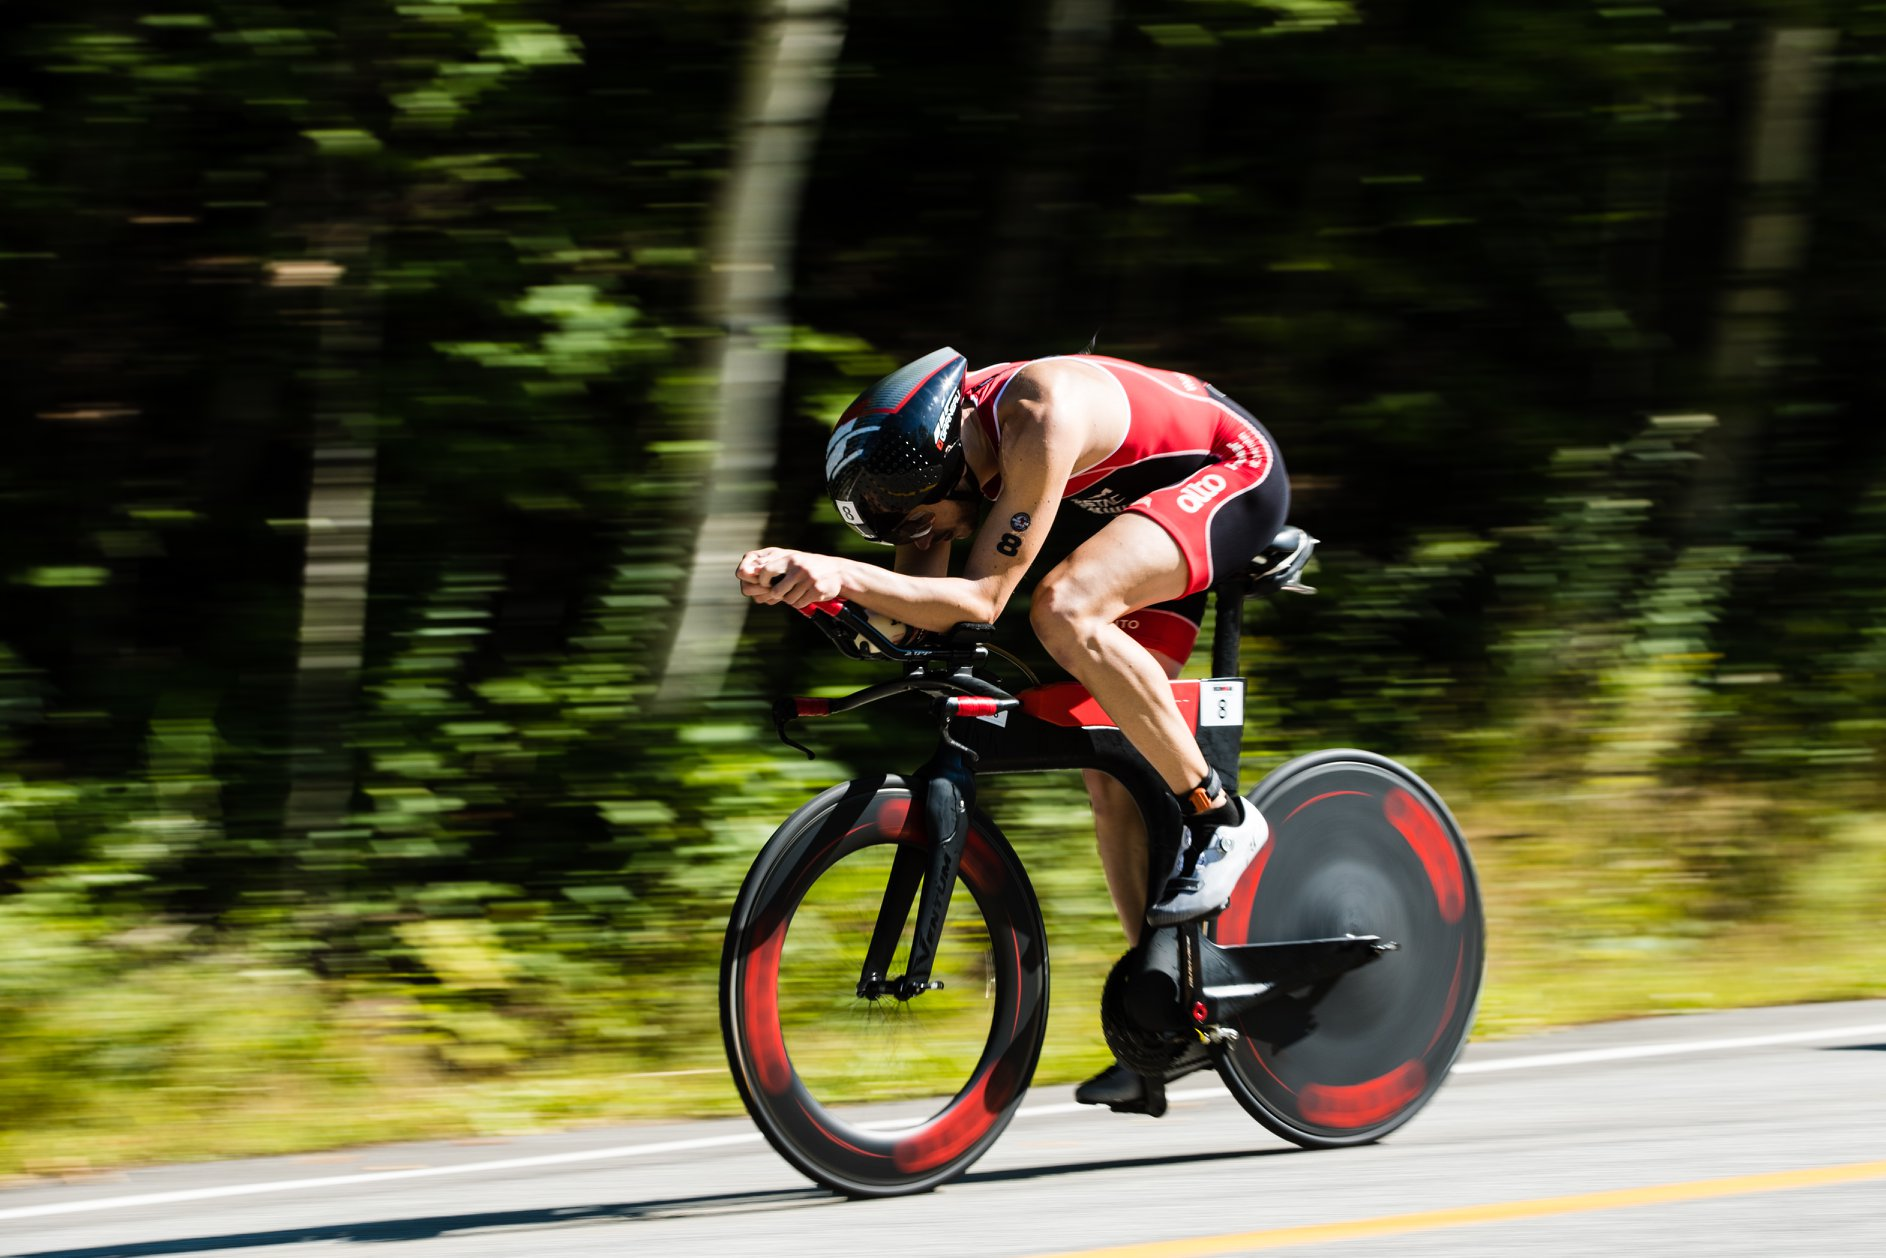 Coach_Terry_Wilson_Pursuit_of_The_Perfect_Race_IRONMAN_Mont_Tremblant_Cody_Beals_Bike.jpg